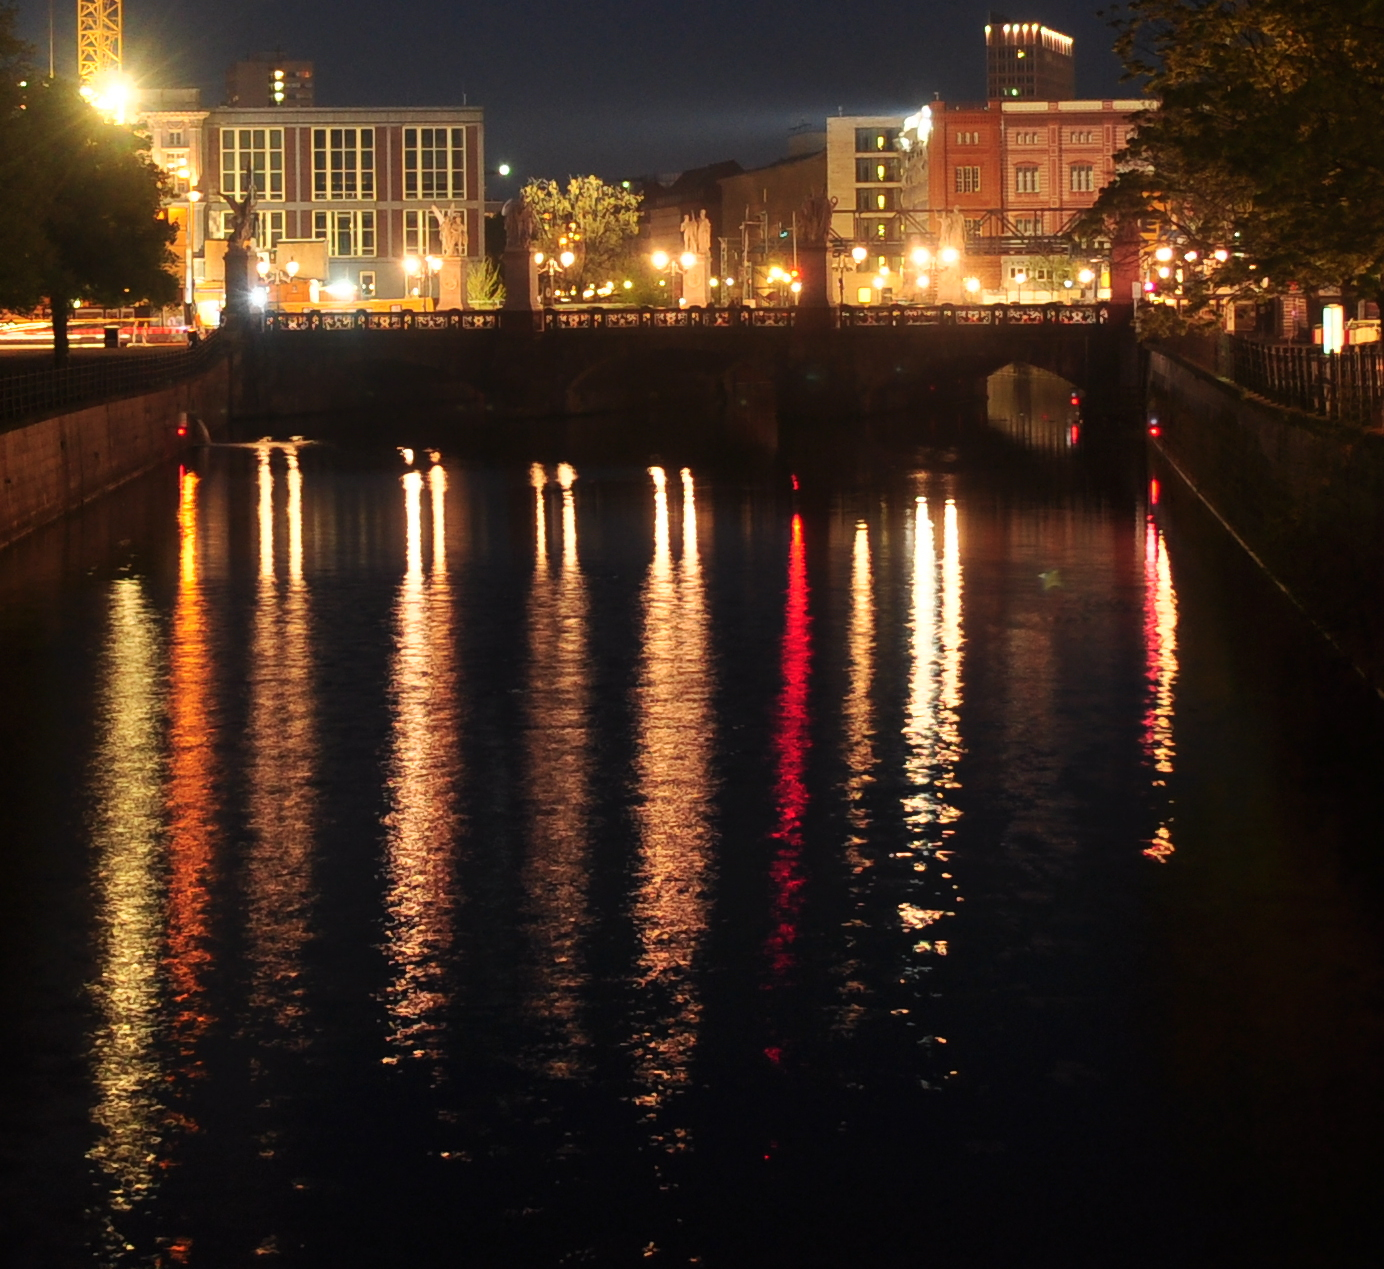 Schlossbrücke (Palace Bridge), Berlin-Mitte, from the north, at night.